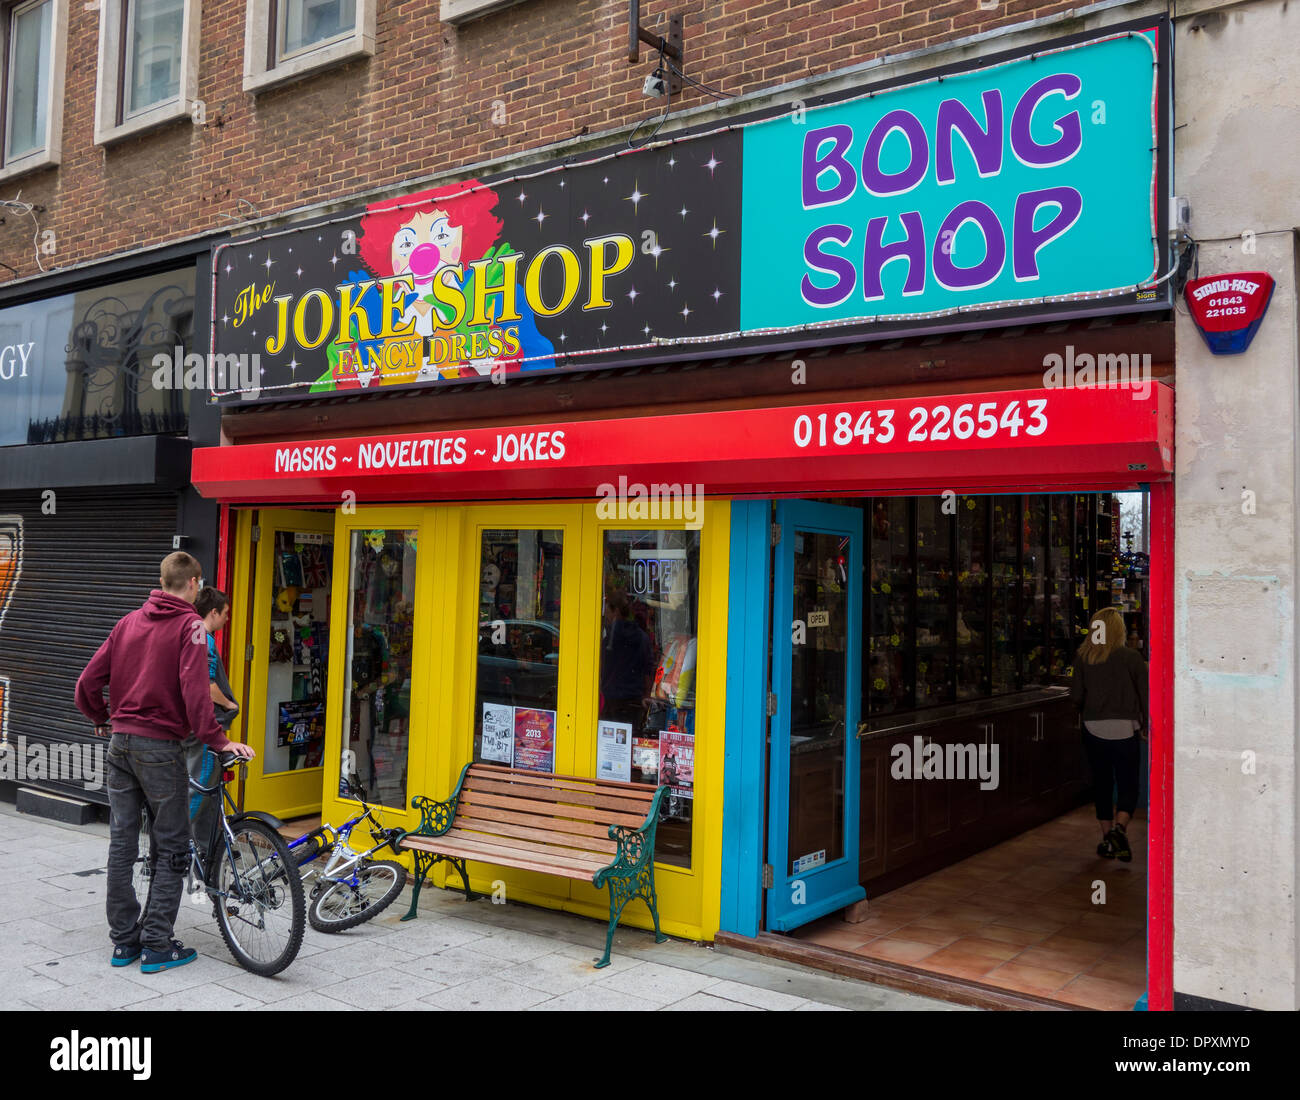 The Online Joke Shop Joke Shop Bong Shop Margate High Street Kent Stock Photo